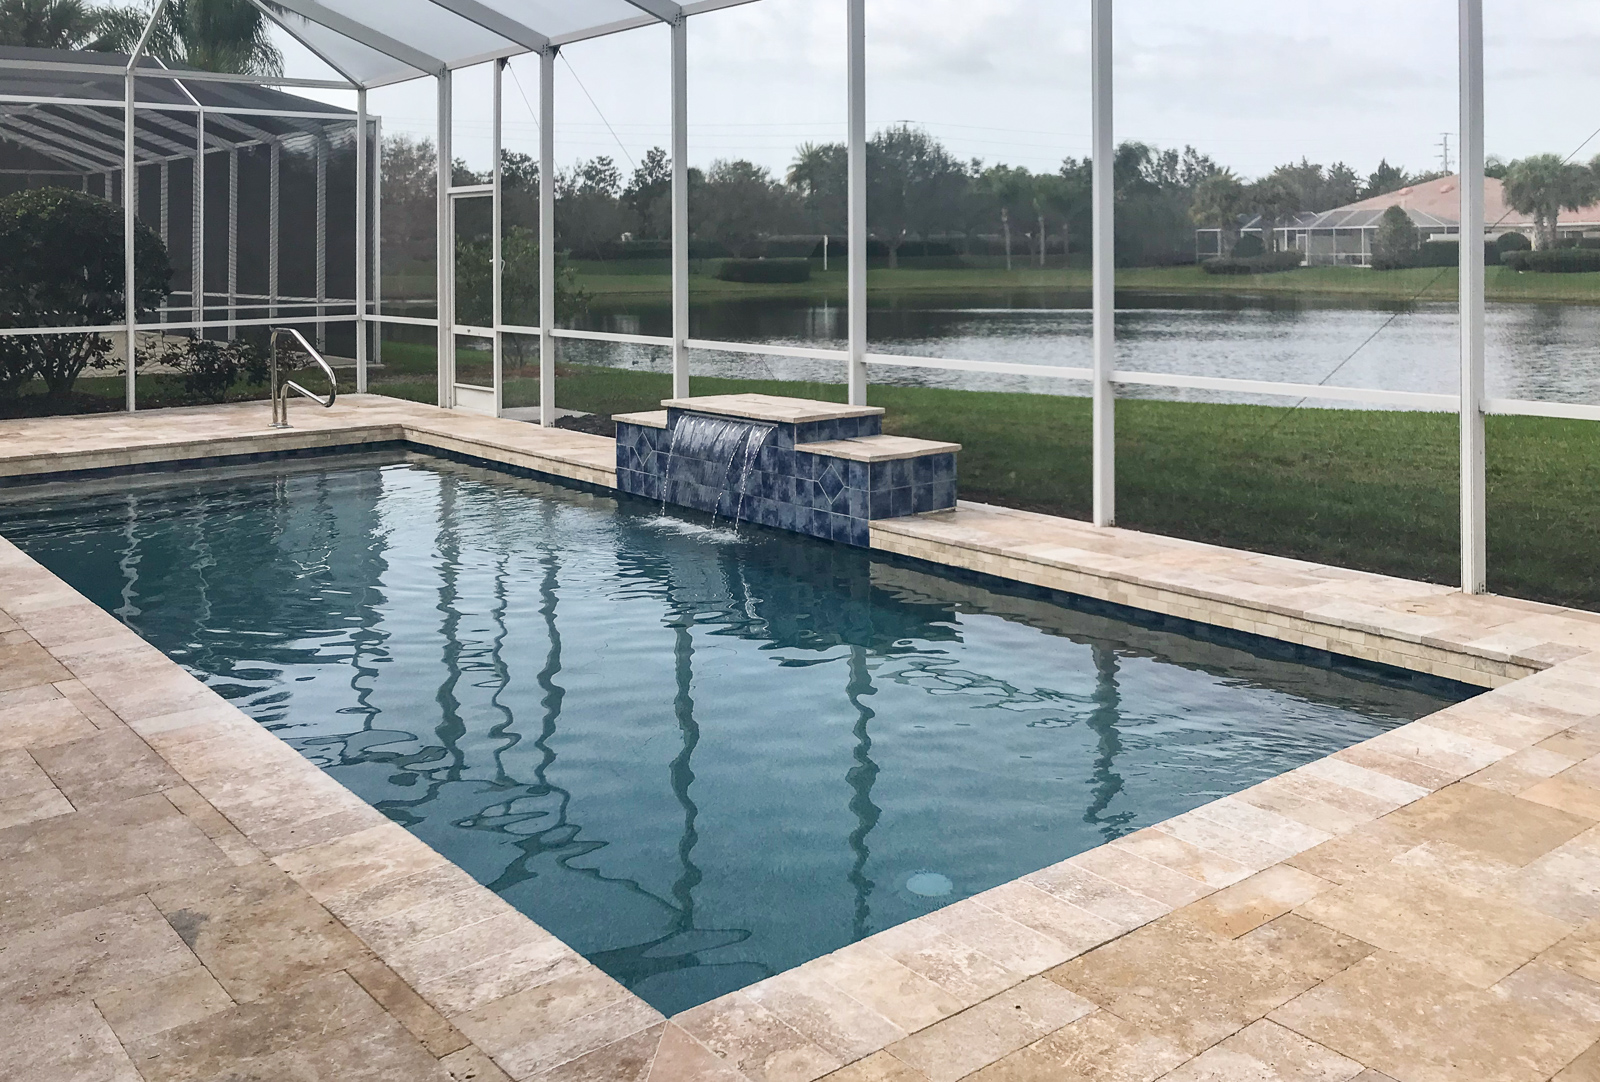 Village Walk swimming pools palmer ranch sarasota pool remodel